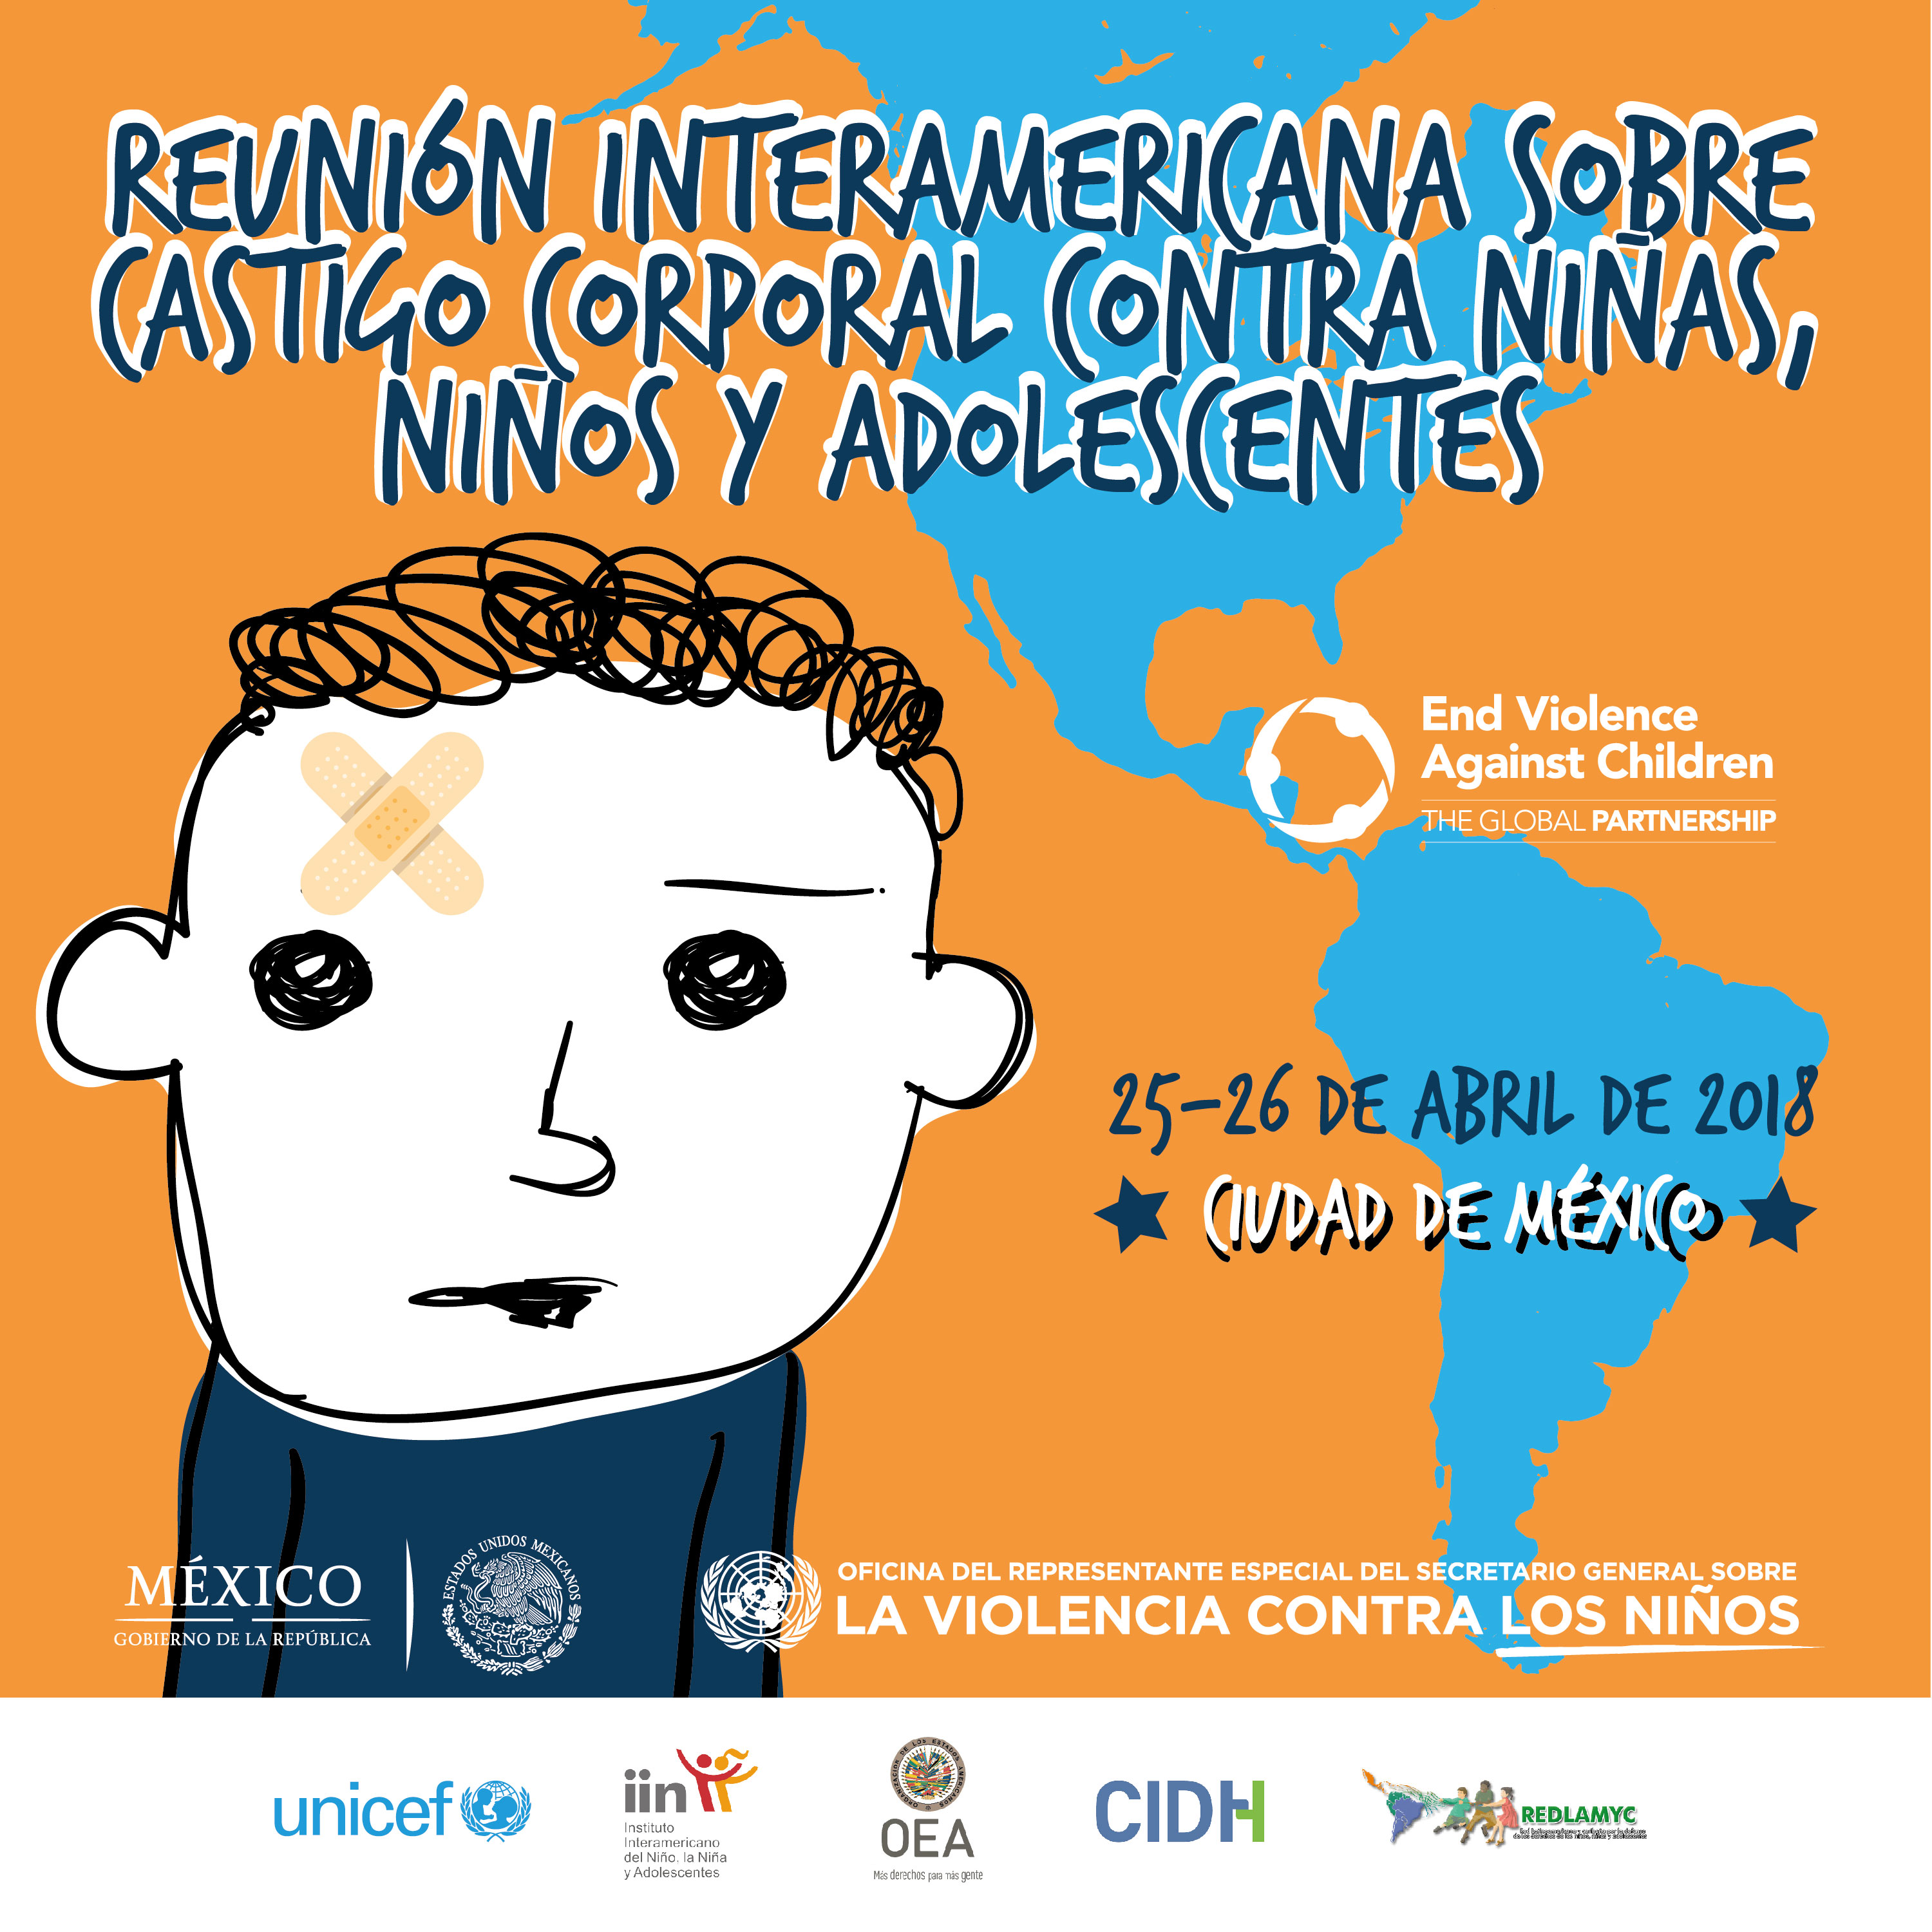 GNRC Participates in the Inter-American Meeting on Corporal Punishment of Children